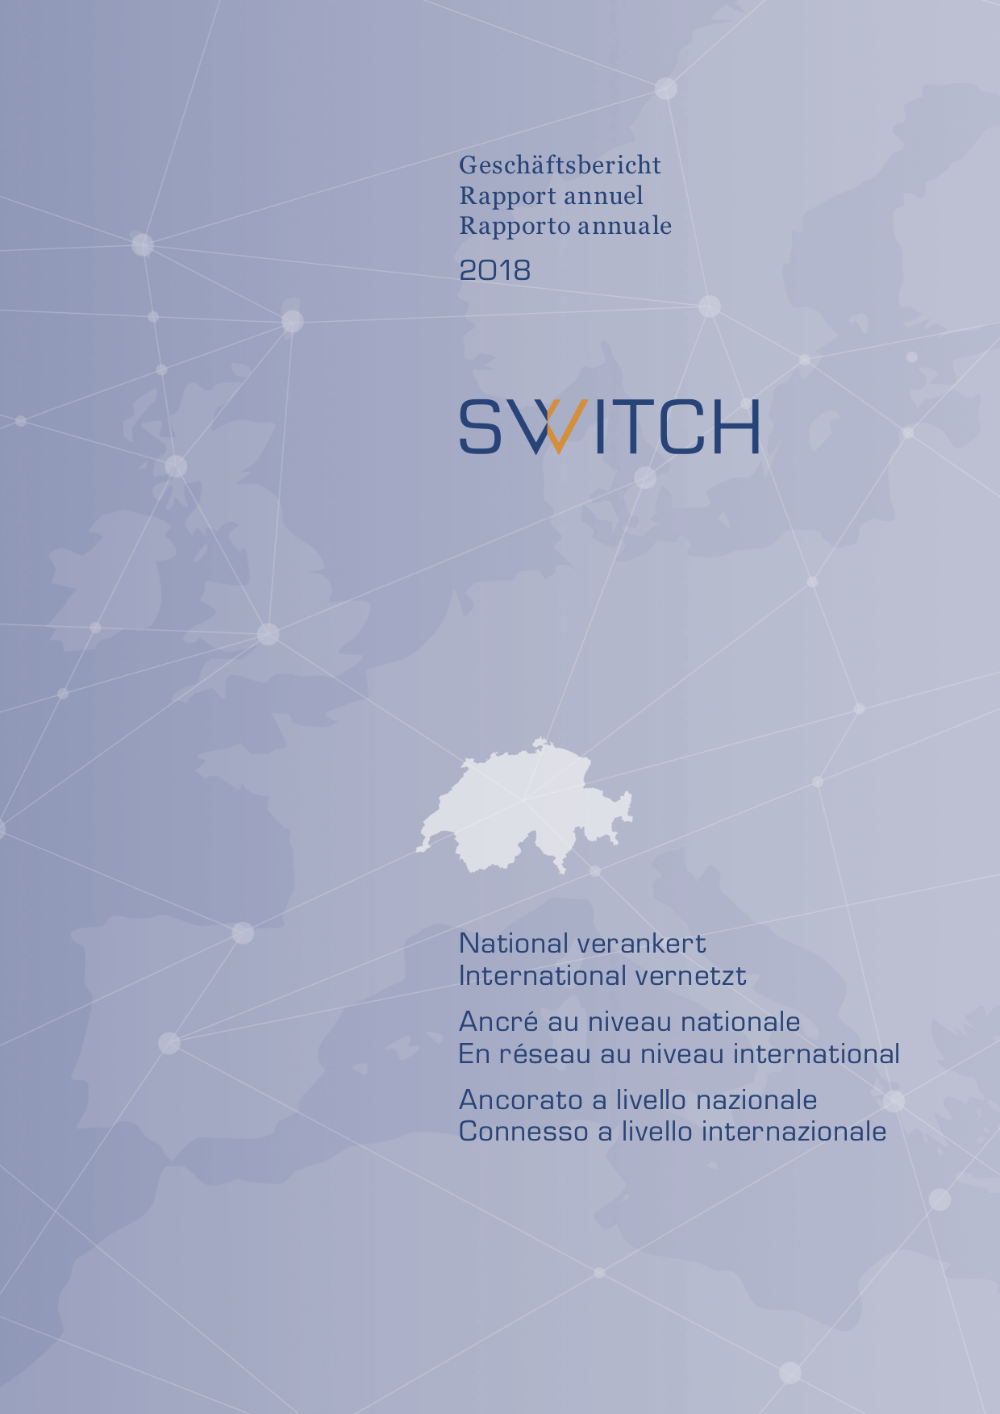 SWITCH Annual Report 2018